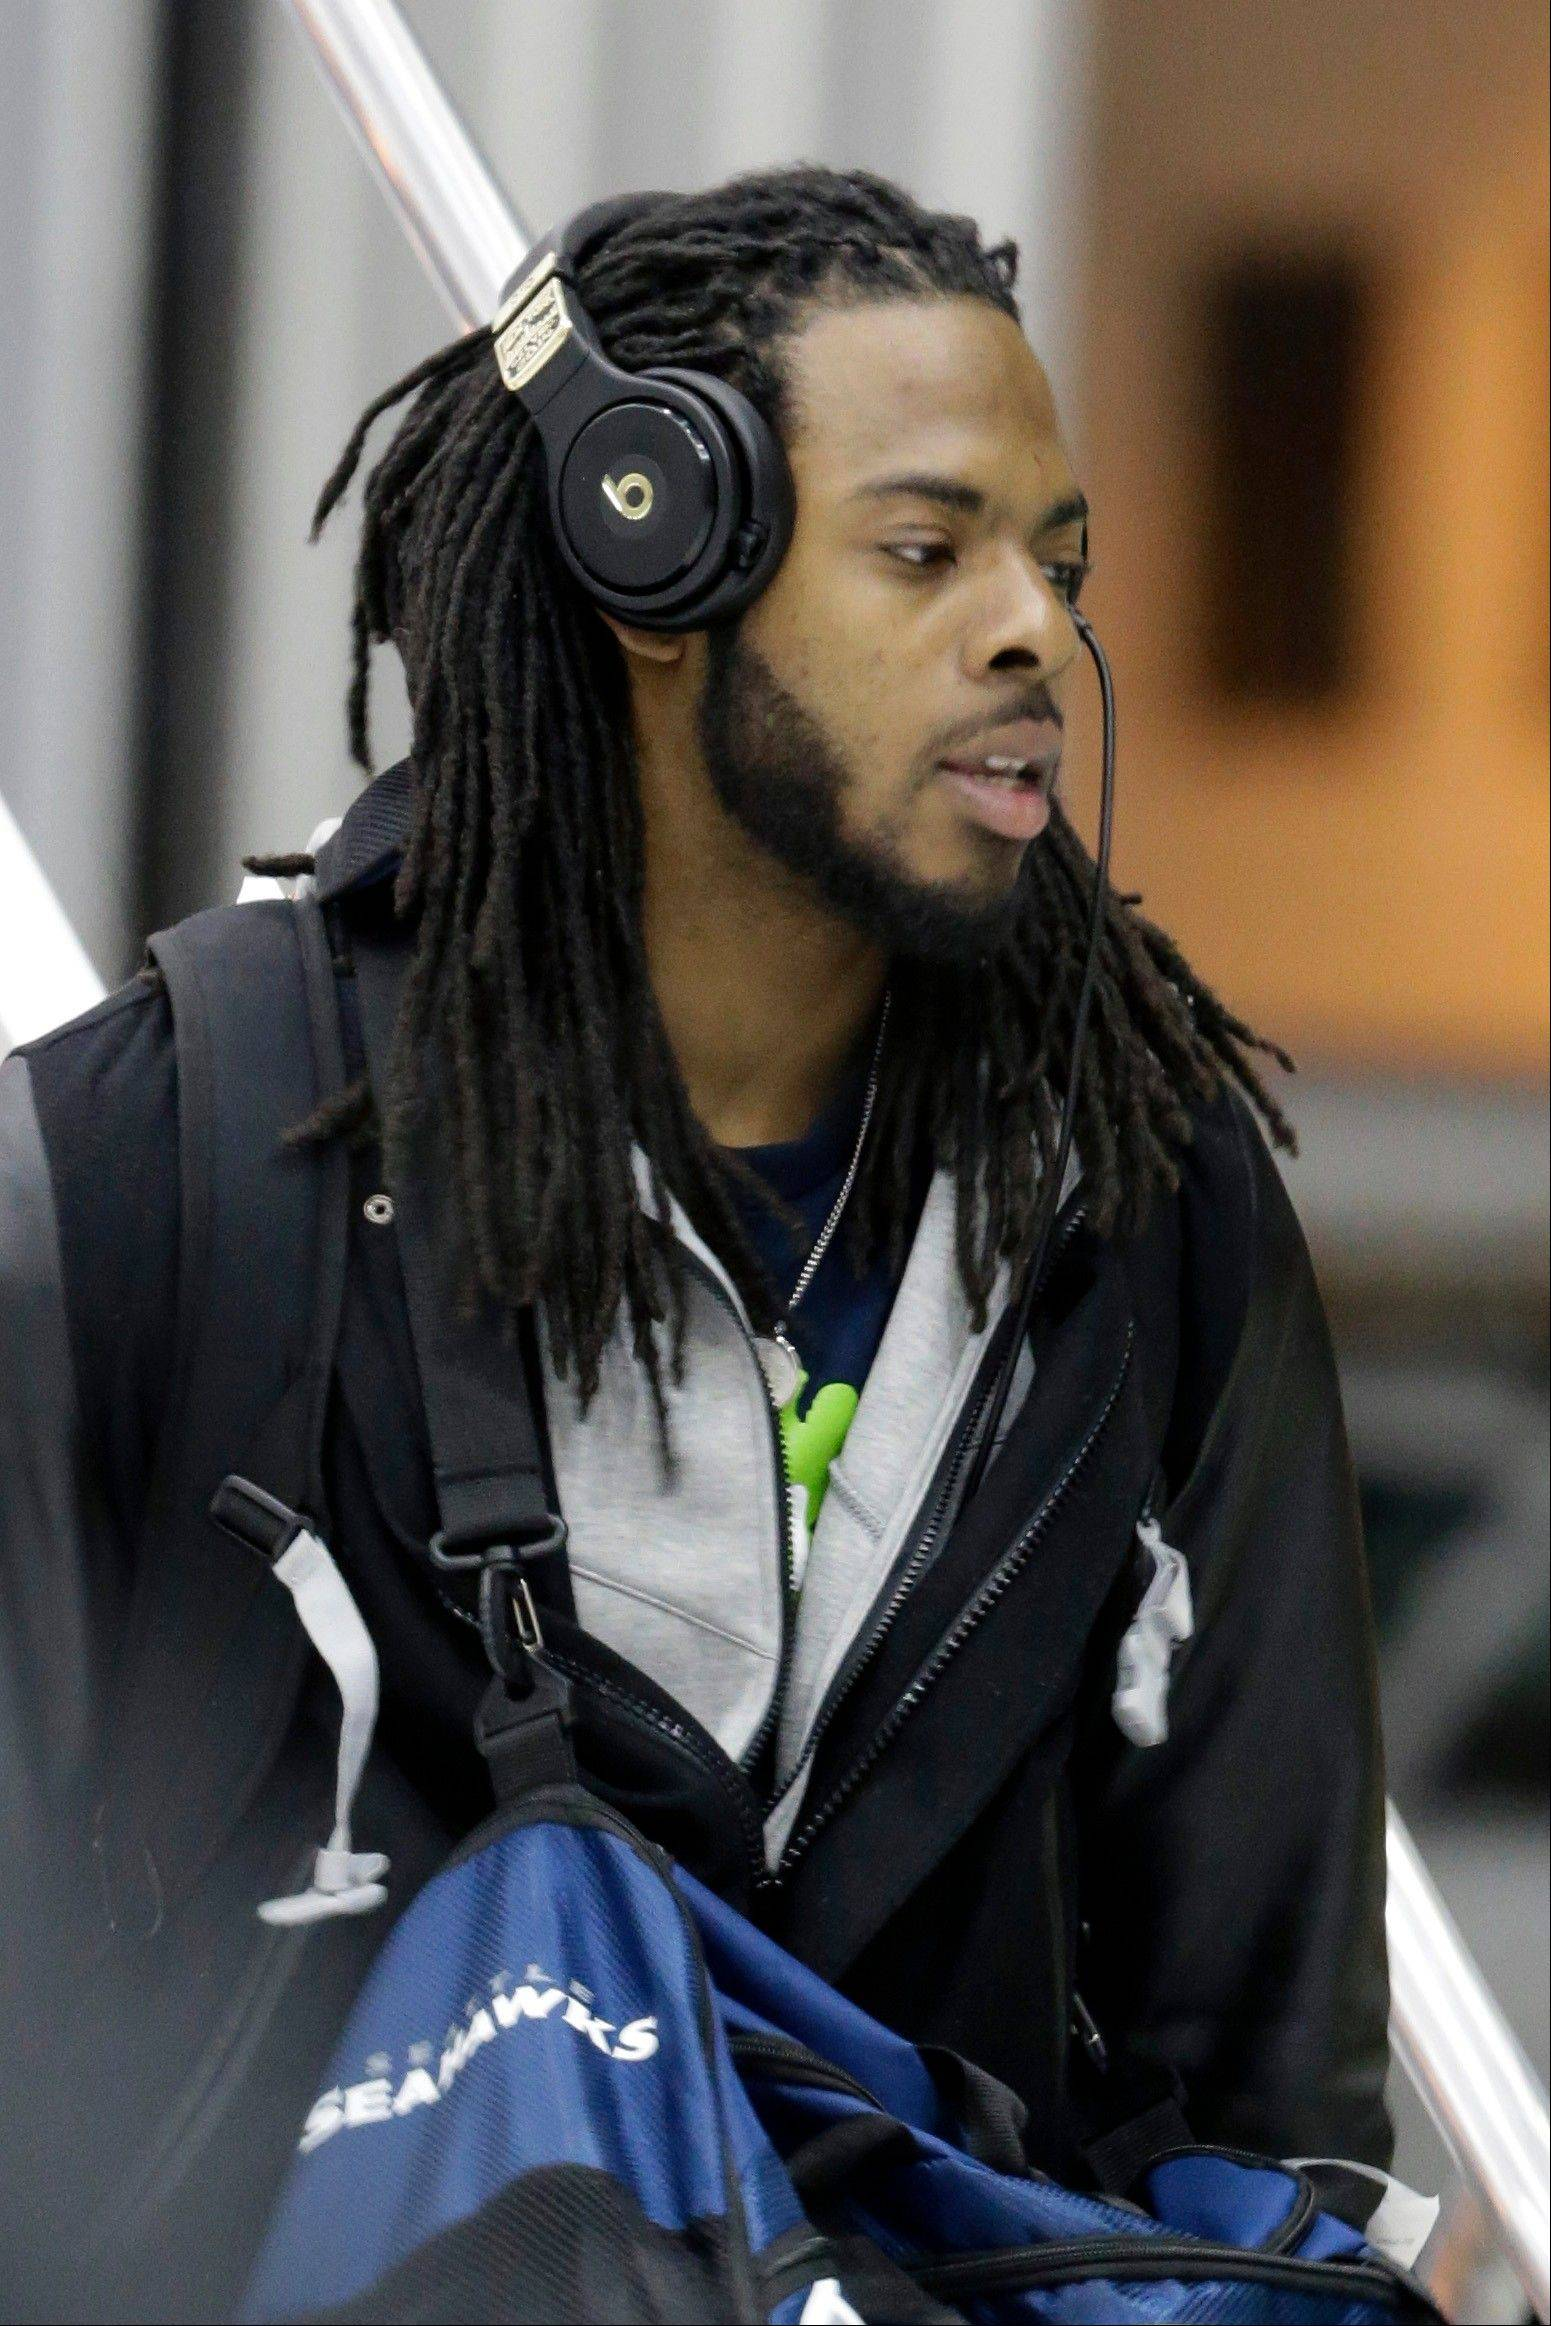 Seattle Seahawks' Richard Sherman arrives at Newark Liberty International Airport for the NFL Super Bowl XLVIII football game, Sunday, Jan. 26, 2014, in Newark, N.J.